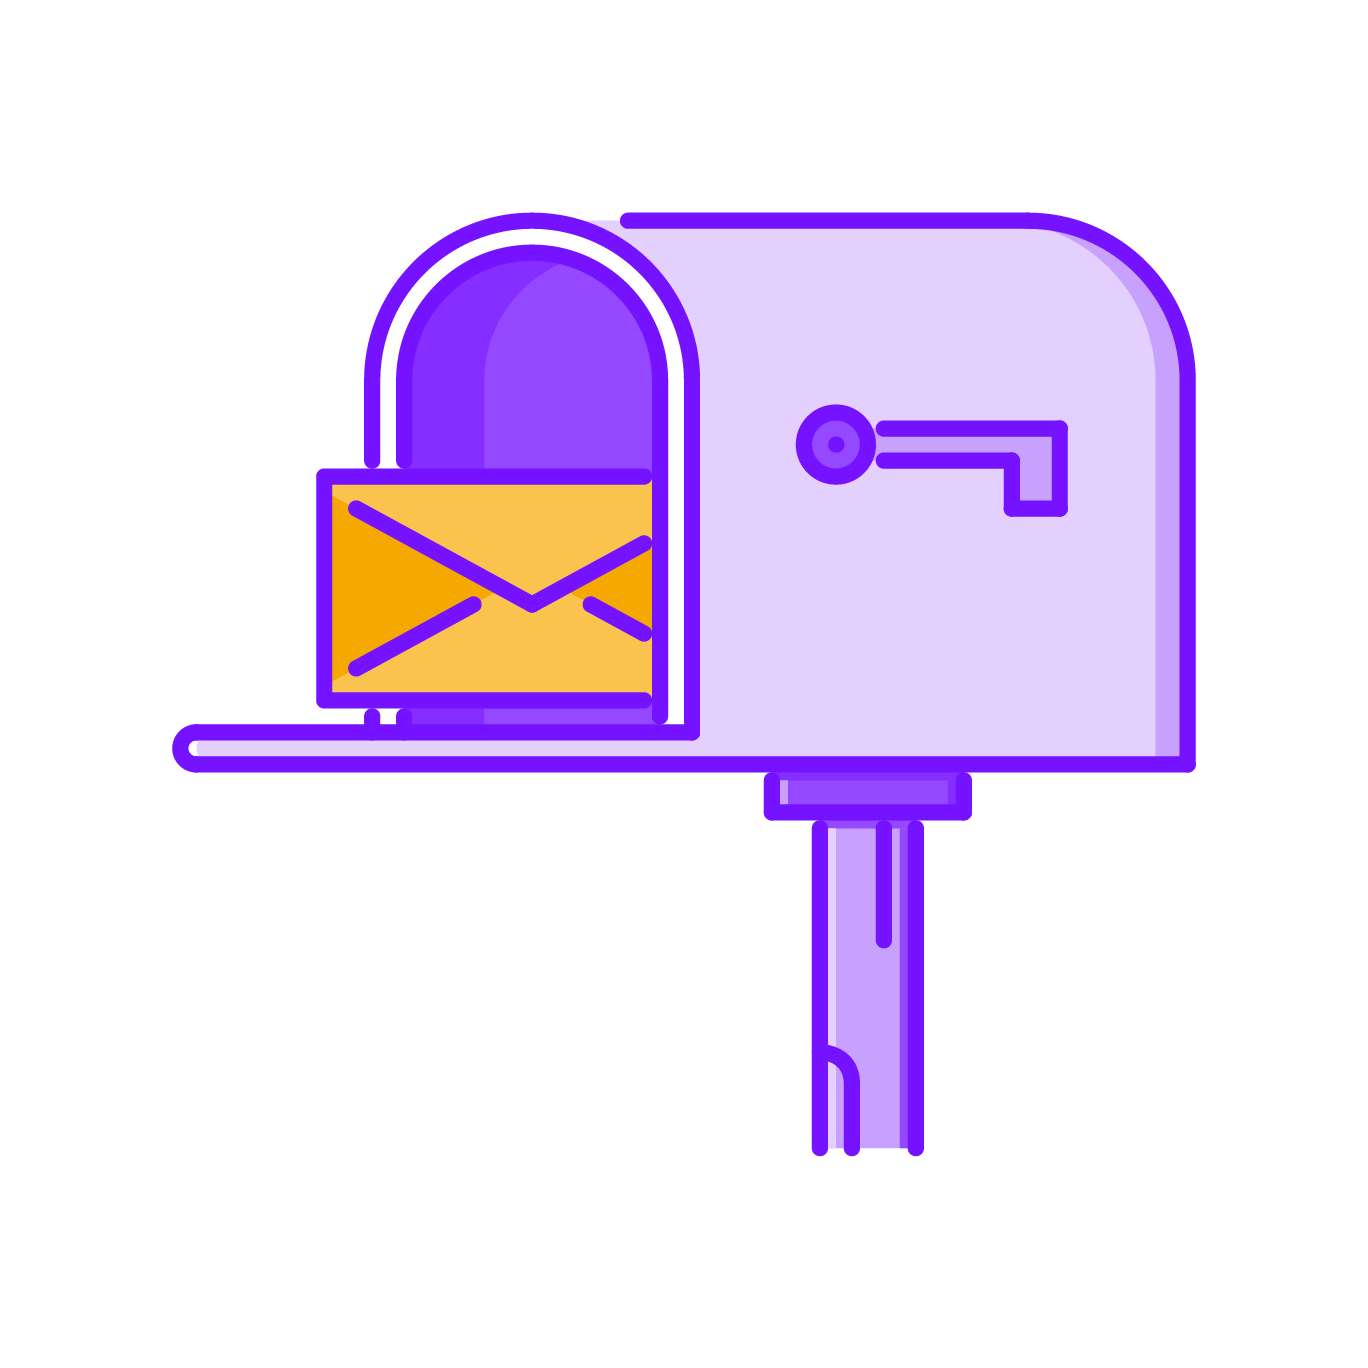 icon of mailbox